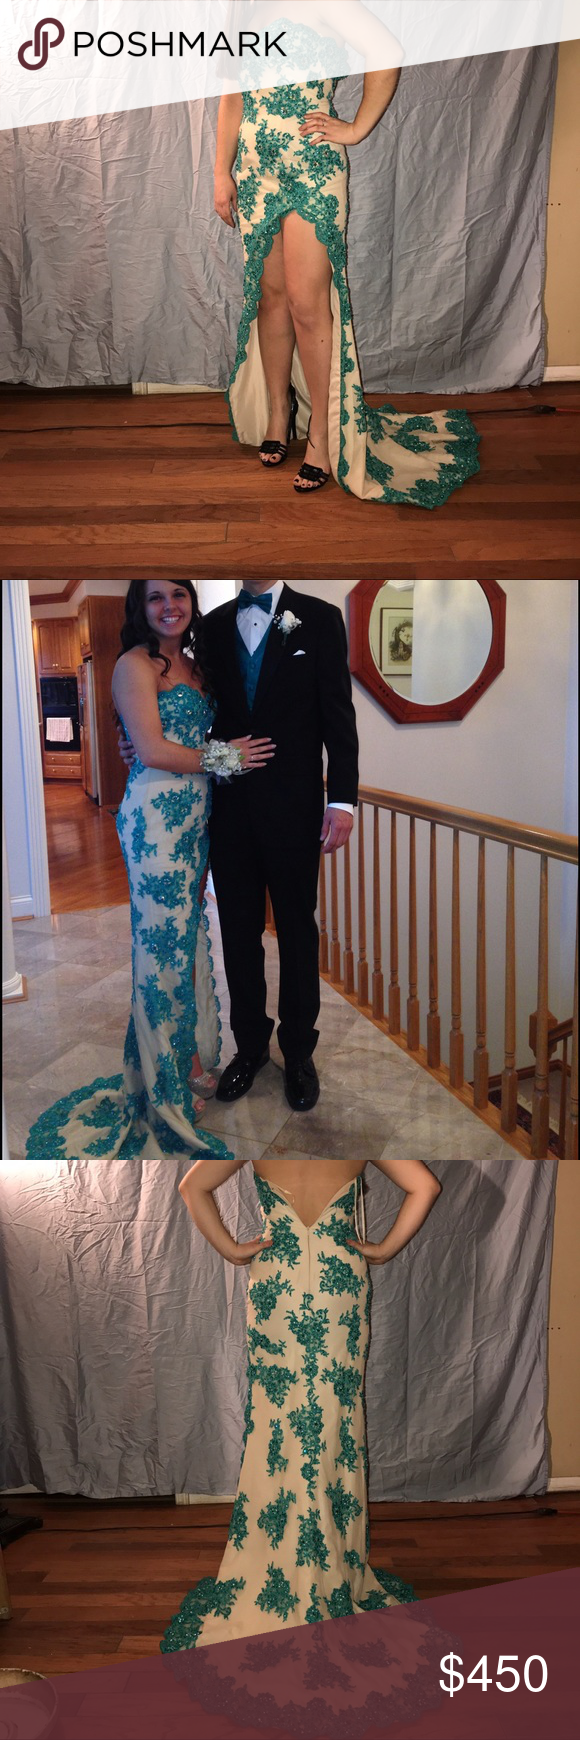 Prom dress very similar to the sherri hill gown sherri hill gowns